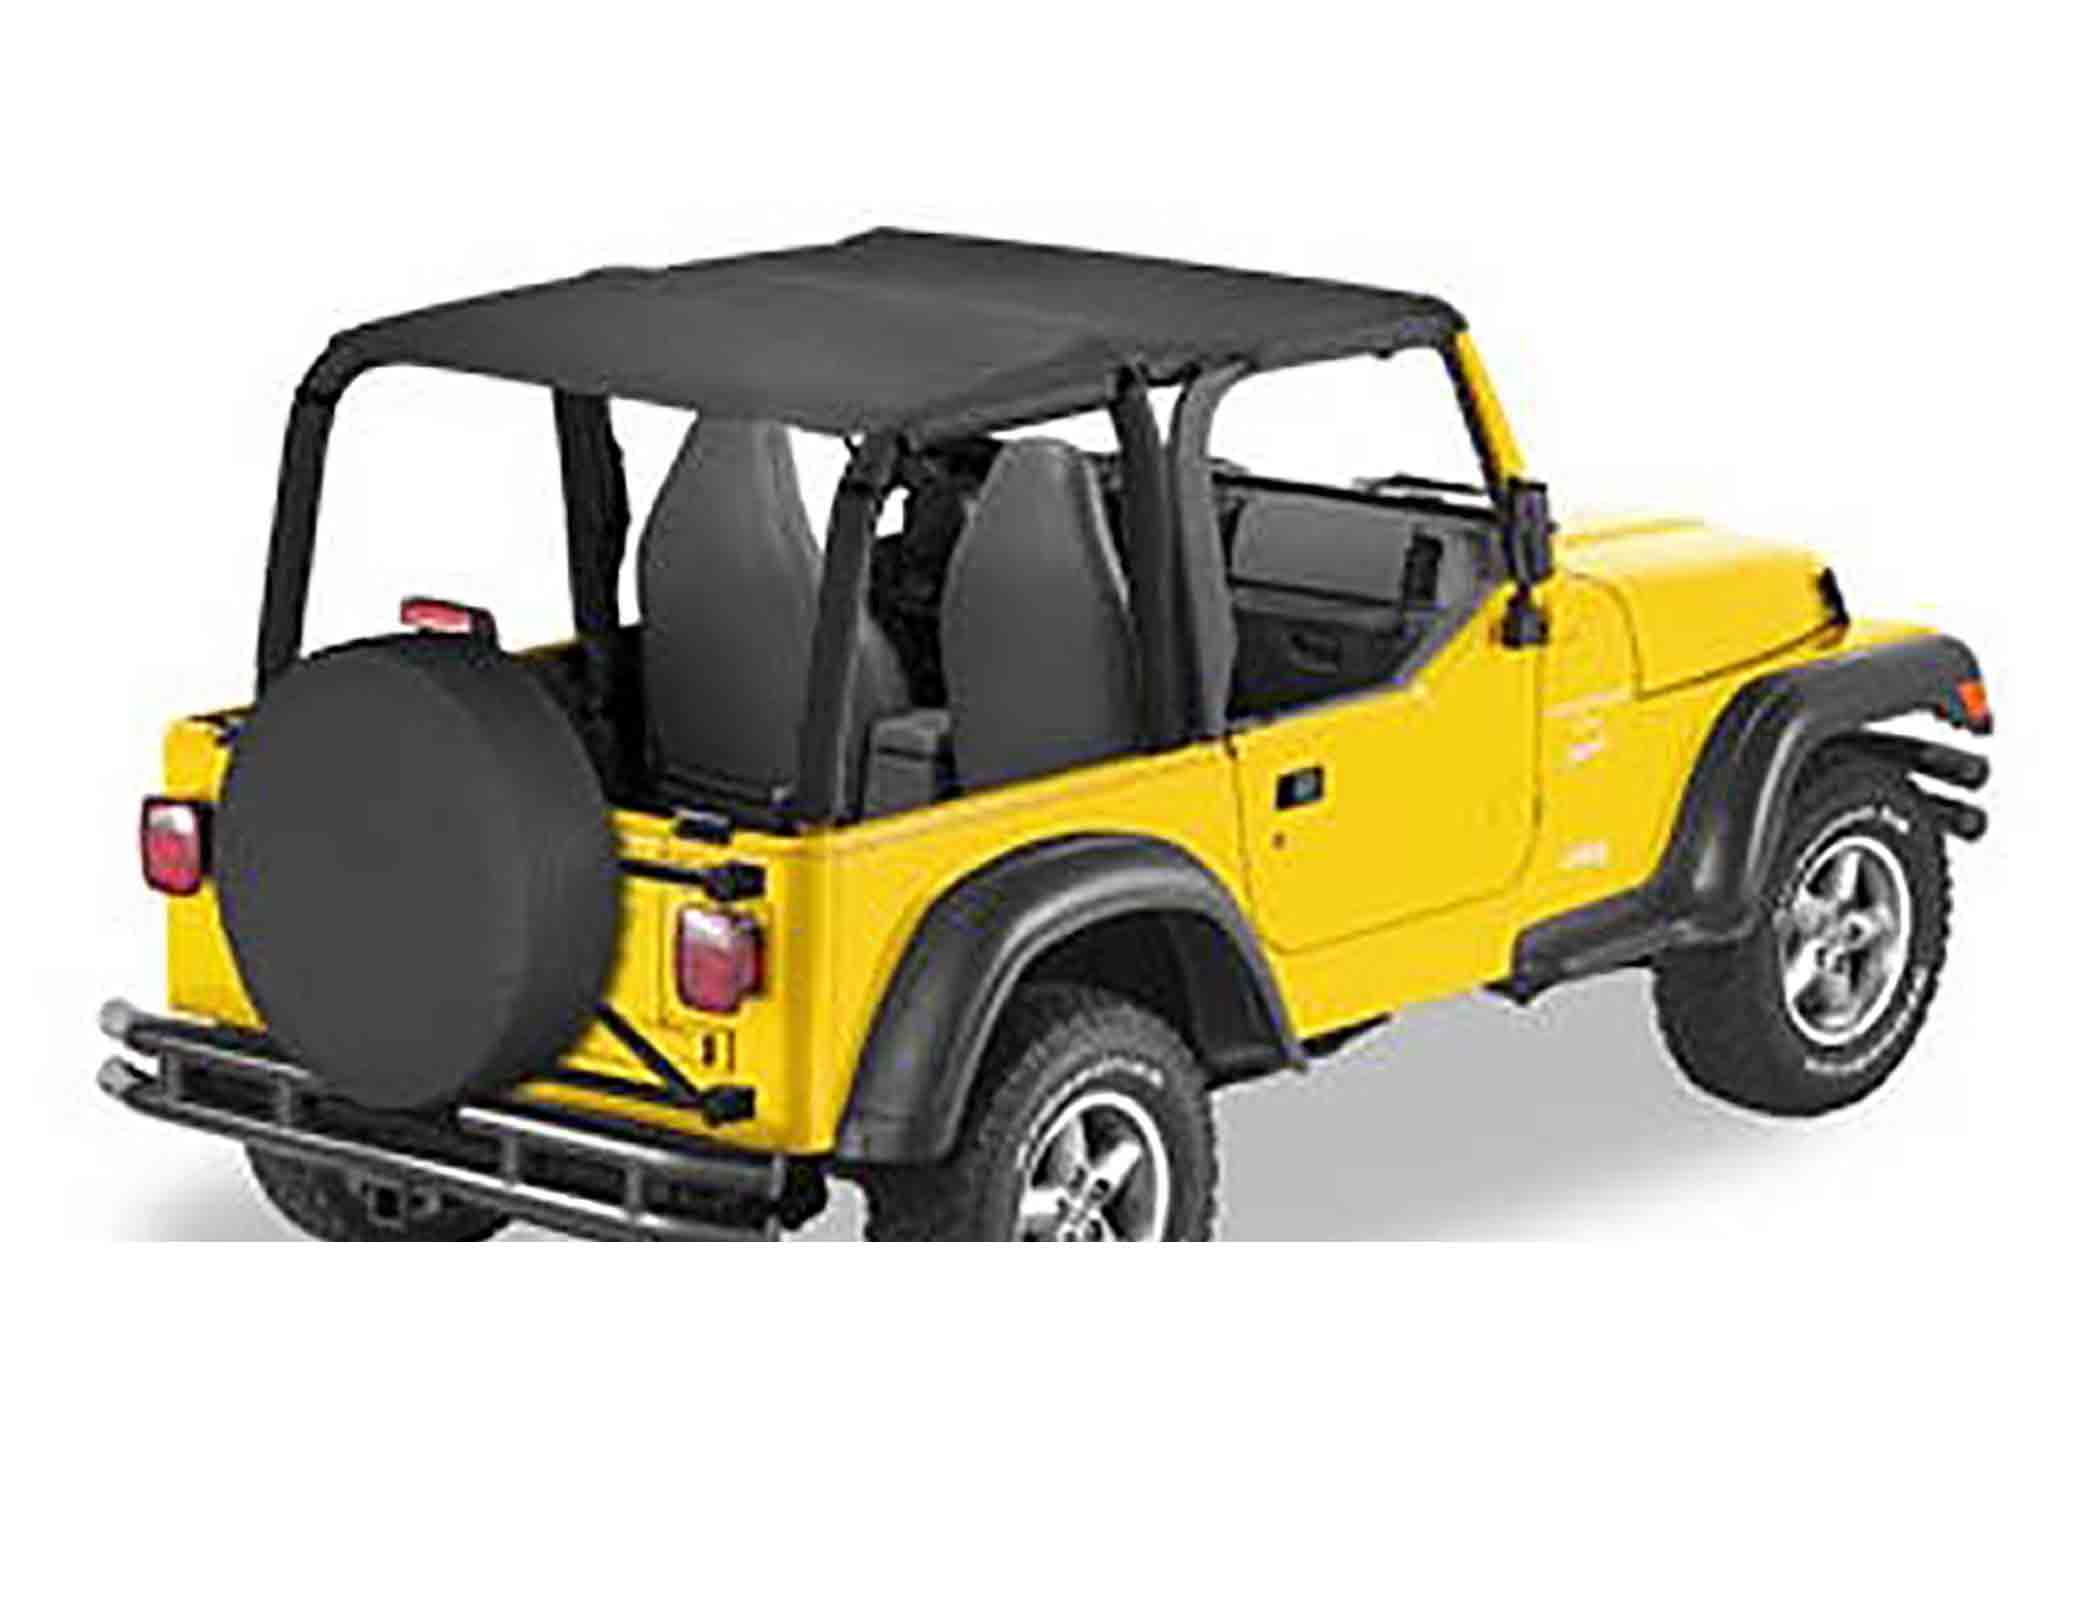 Bikini completo versione safari wrangler tj 03 06 black diamond ricambi jeep